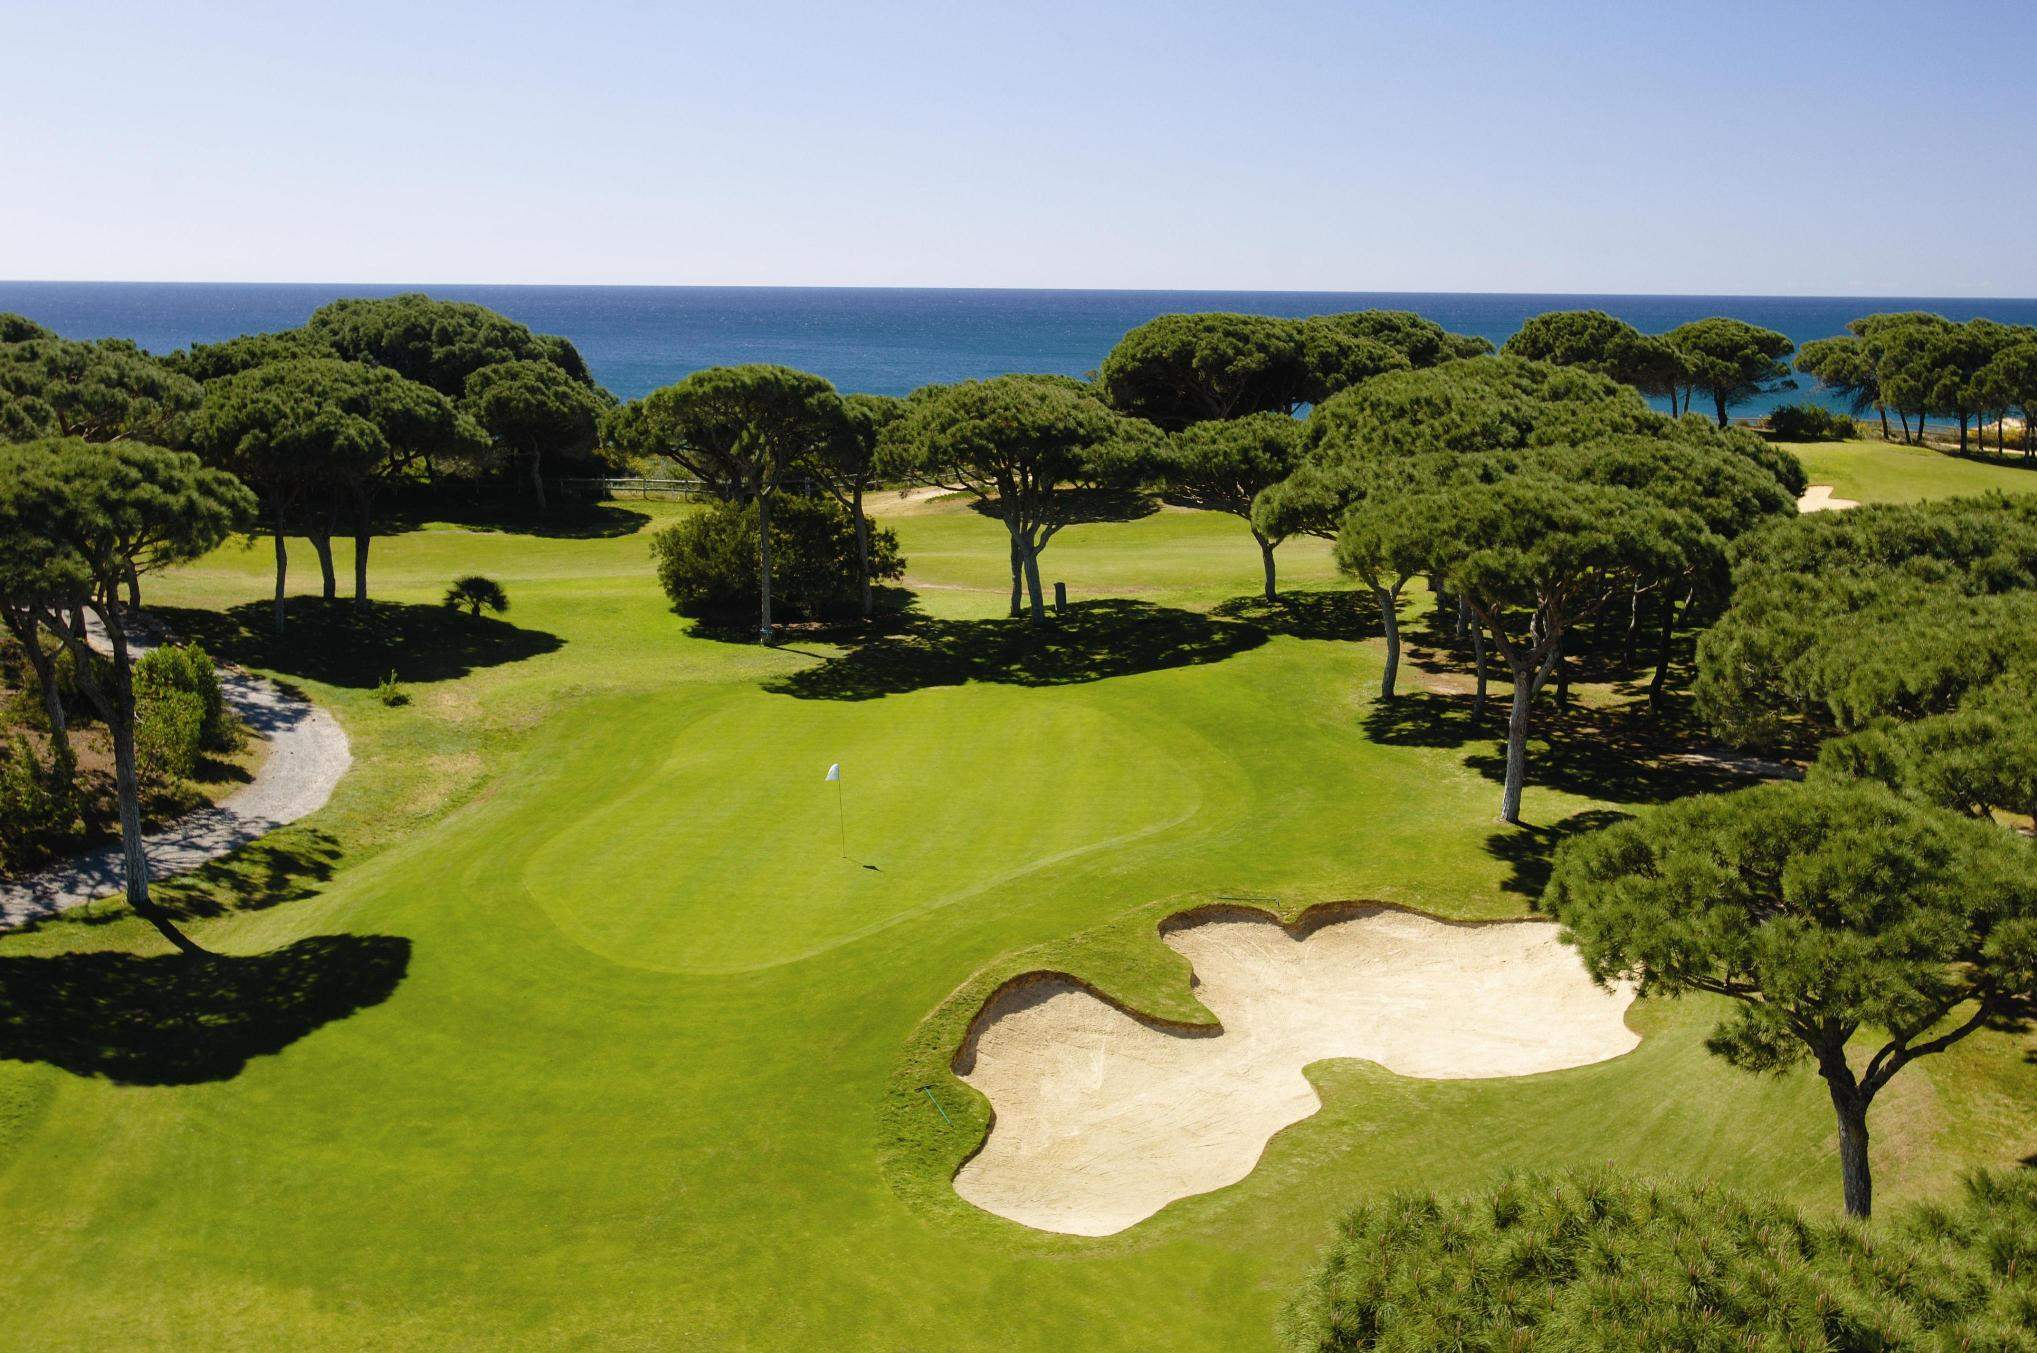 Pine Cliffs Gardens, Two Bedroom Suite, S/C Basis, 2 bedroom apartment in Pine Cliffs Resort, Algarve Photo #30